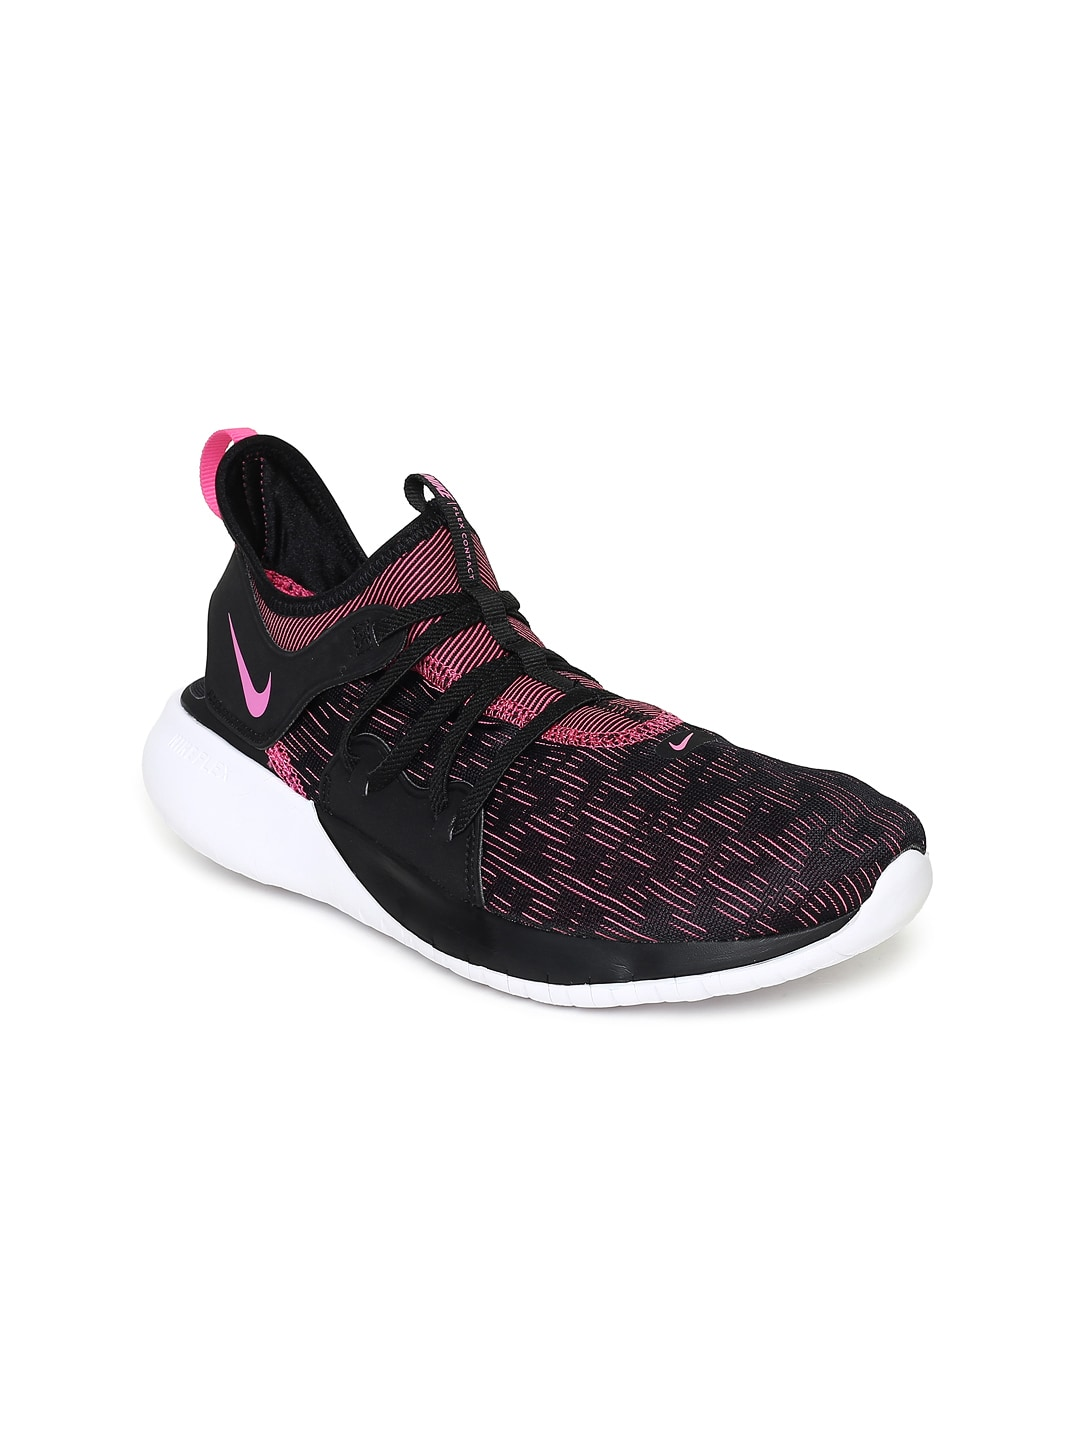 917650f863a Women s Nike Shoes - Buy Nike Shoes for Women Online in India